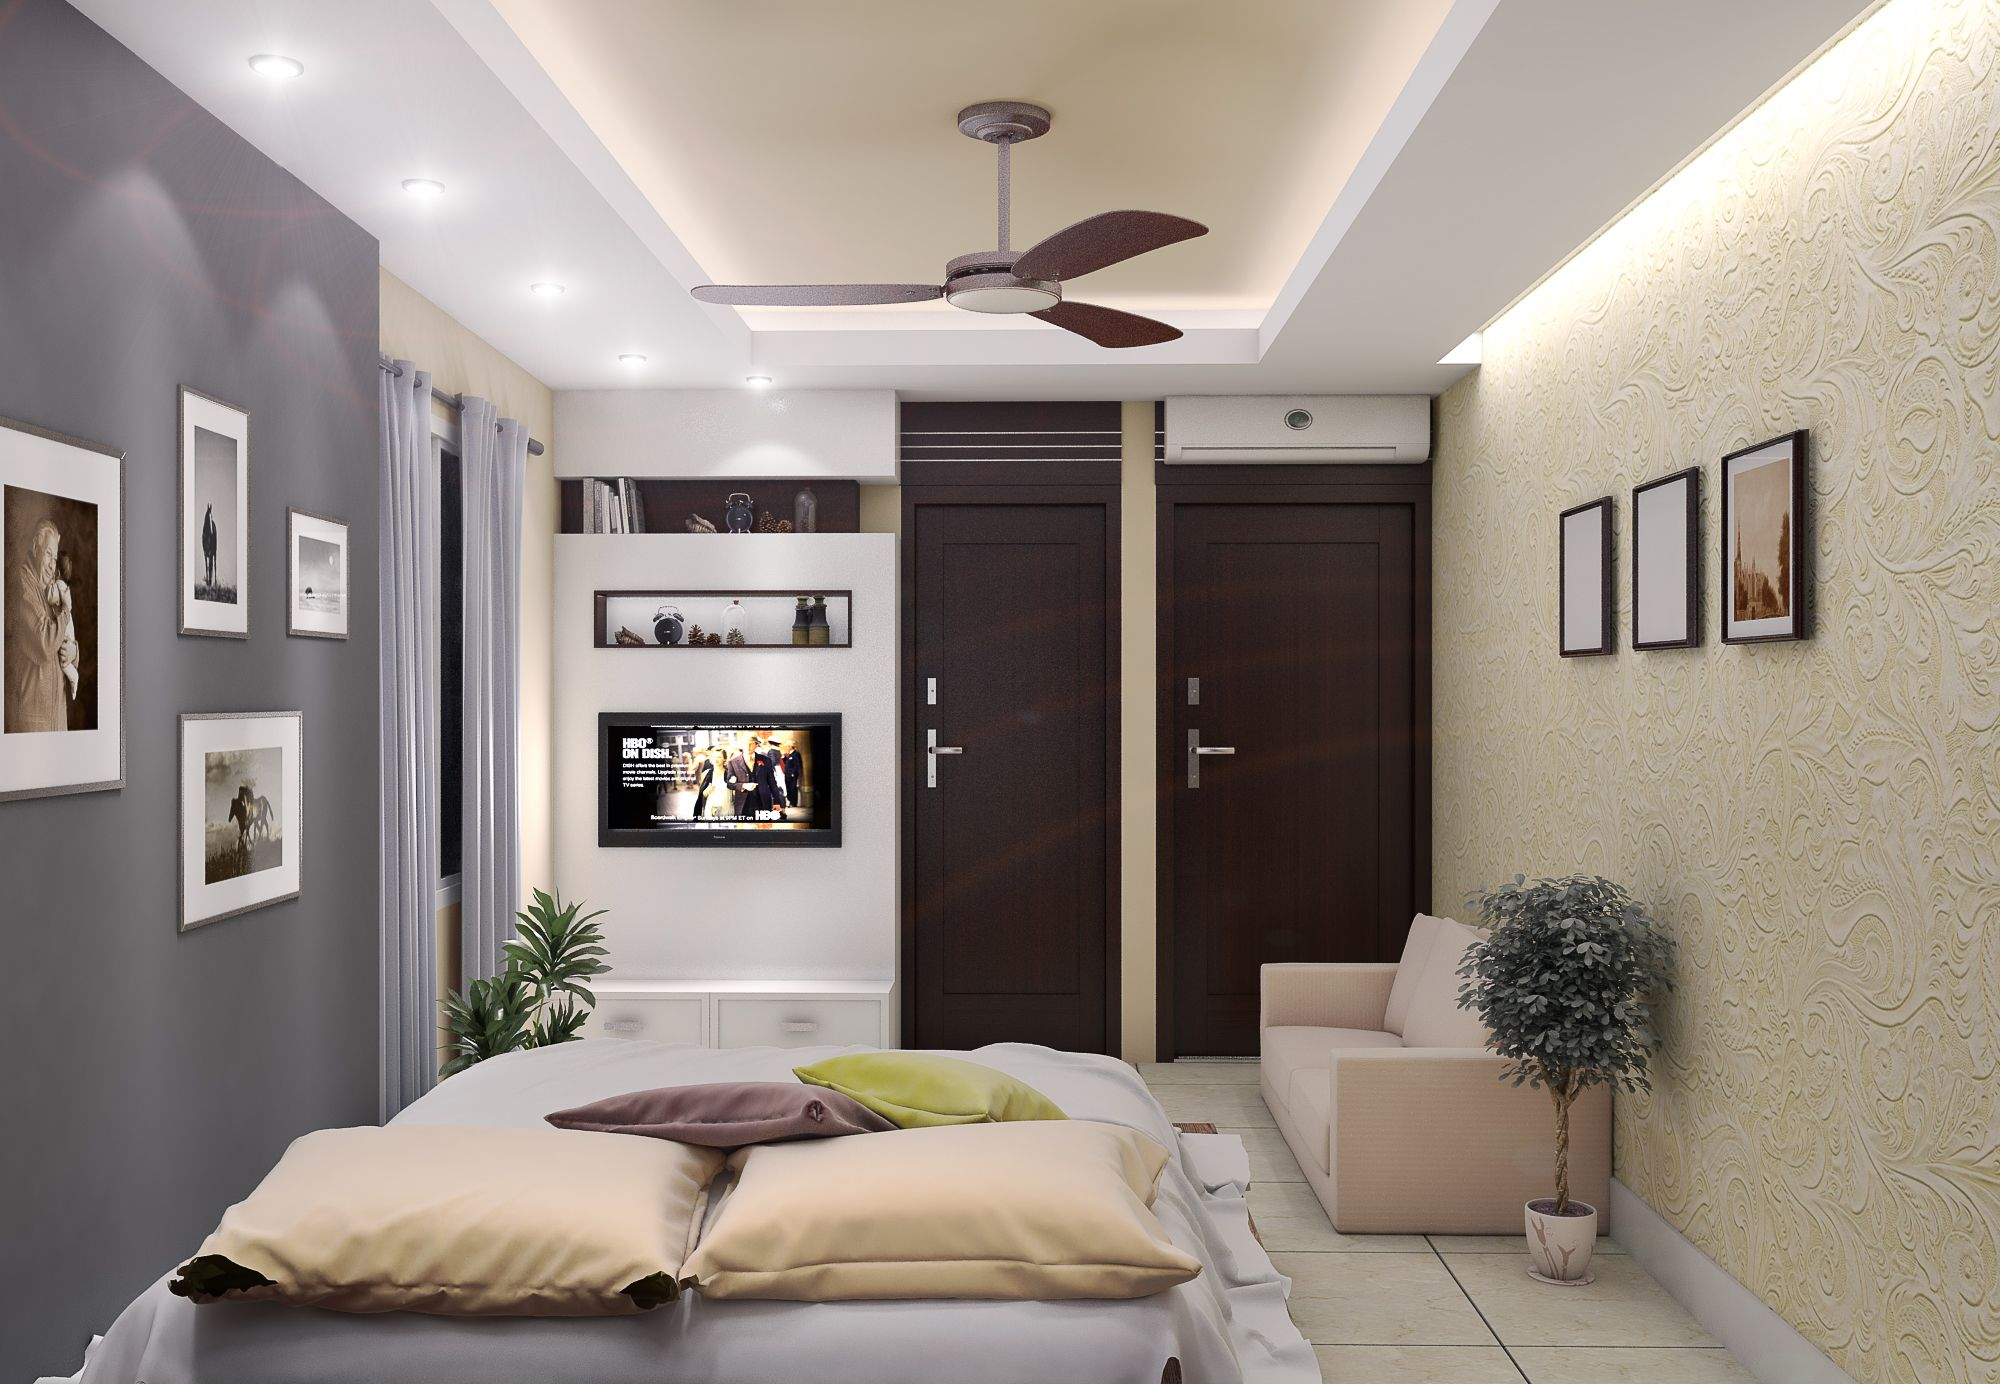 Bed Room Interior Design Company In Bangladesh Interior Design Firm In Bangladesh Interior Interior Design Bedroom Interior Design Interior Design Companies